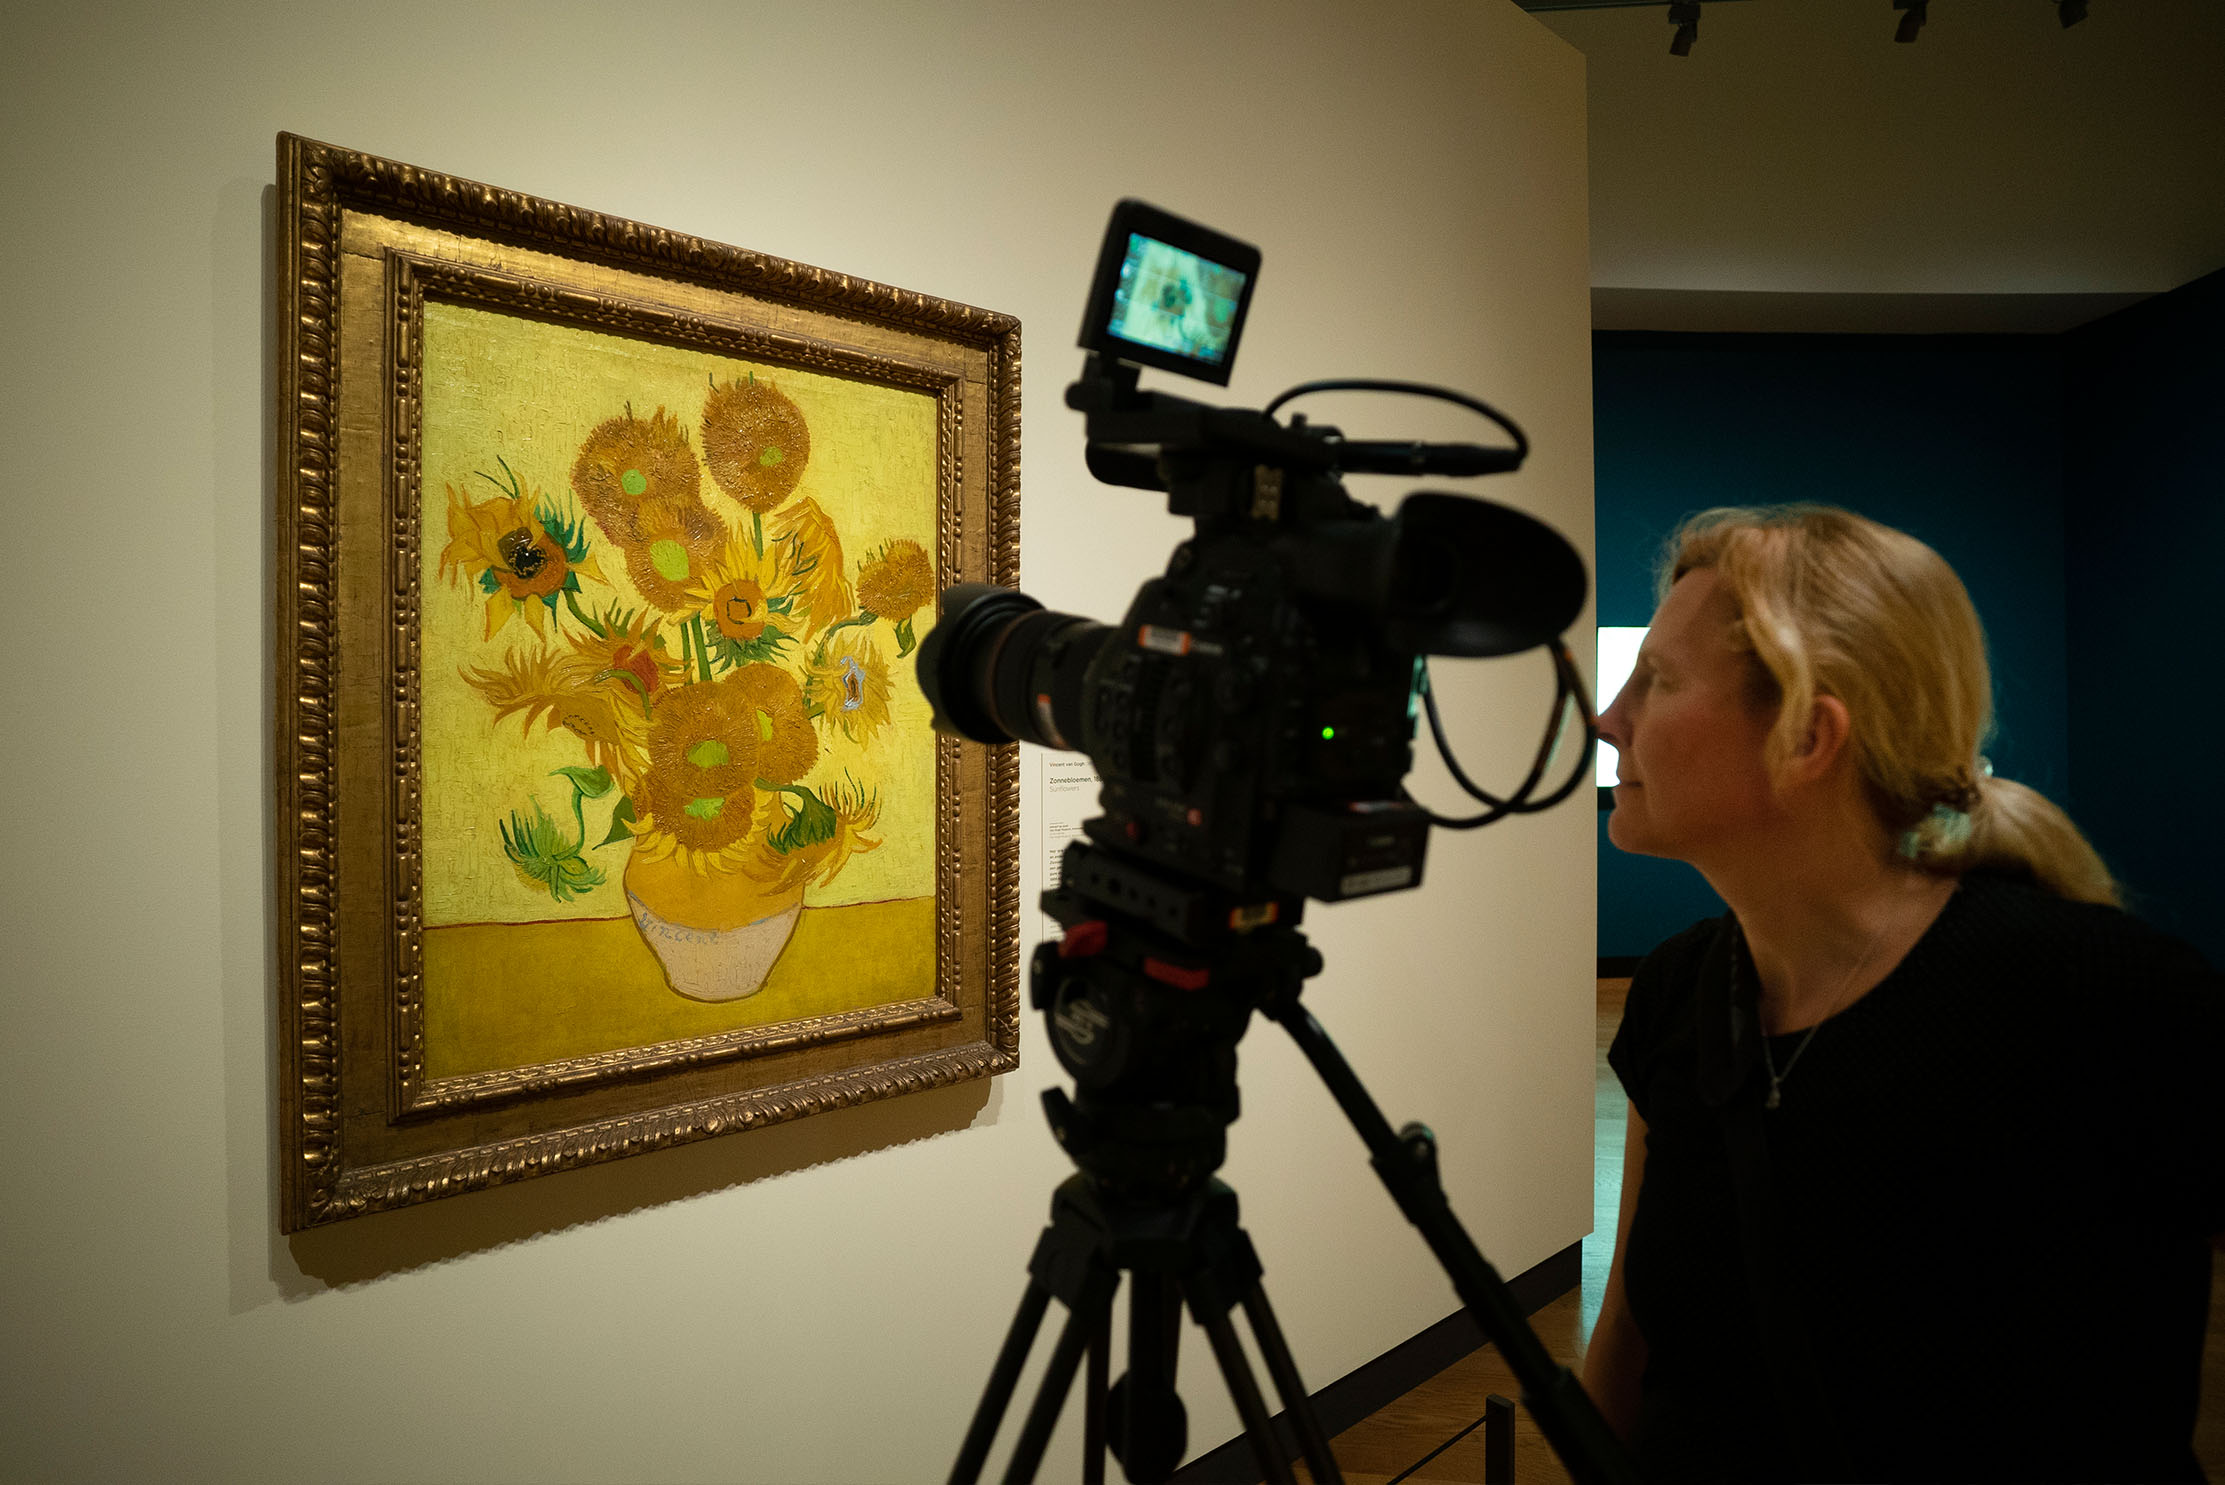 BN1 talks to Brighton-based film director David Bickerstaff, about SUNFLOWERS - his compelling new documentary about Van Gogh's masterworks